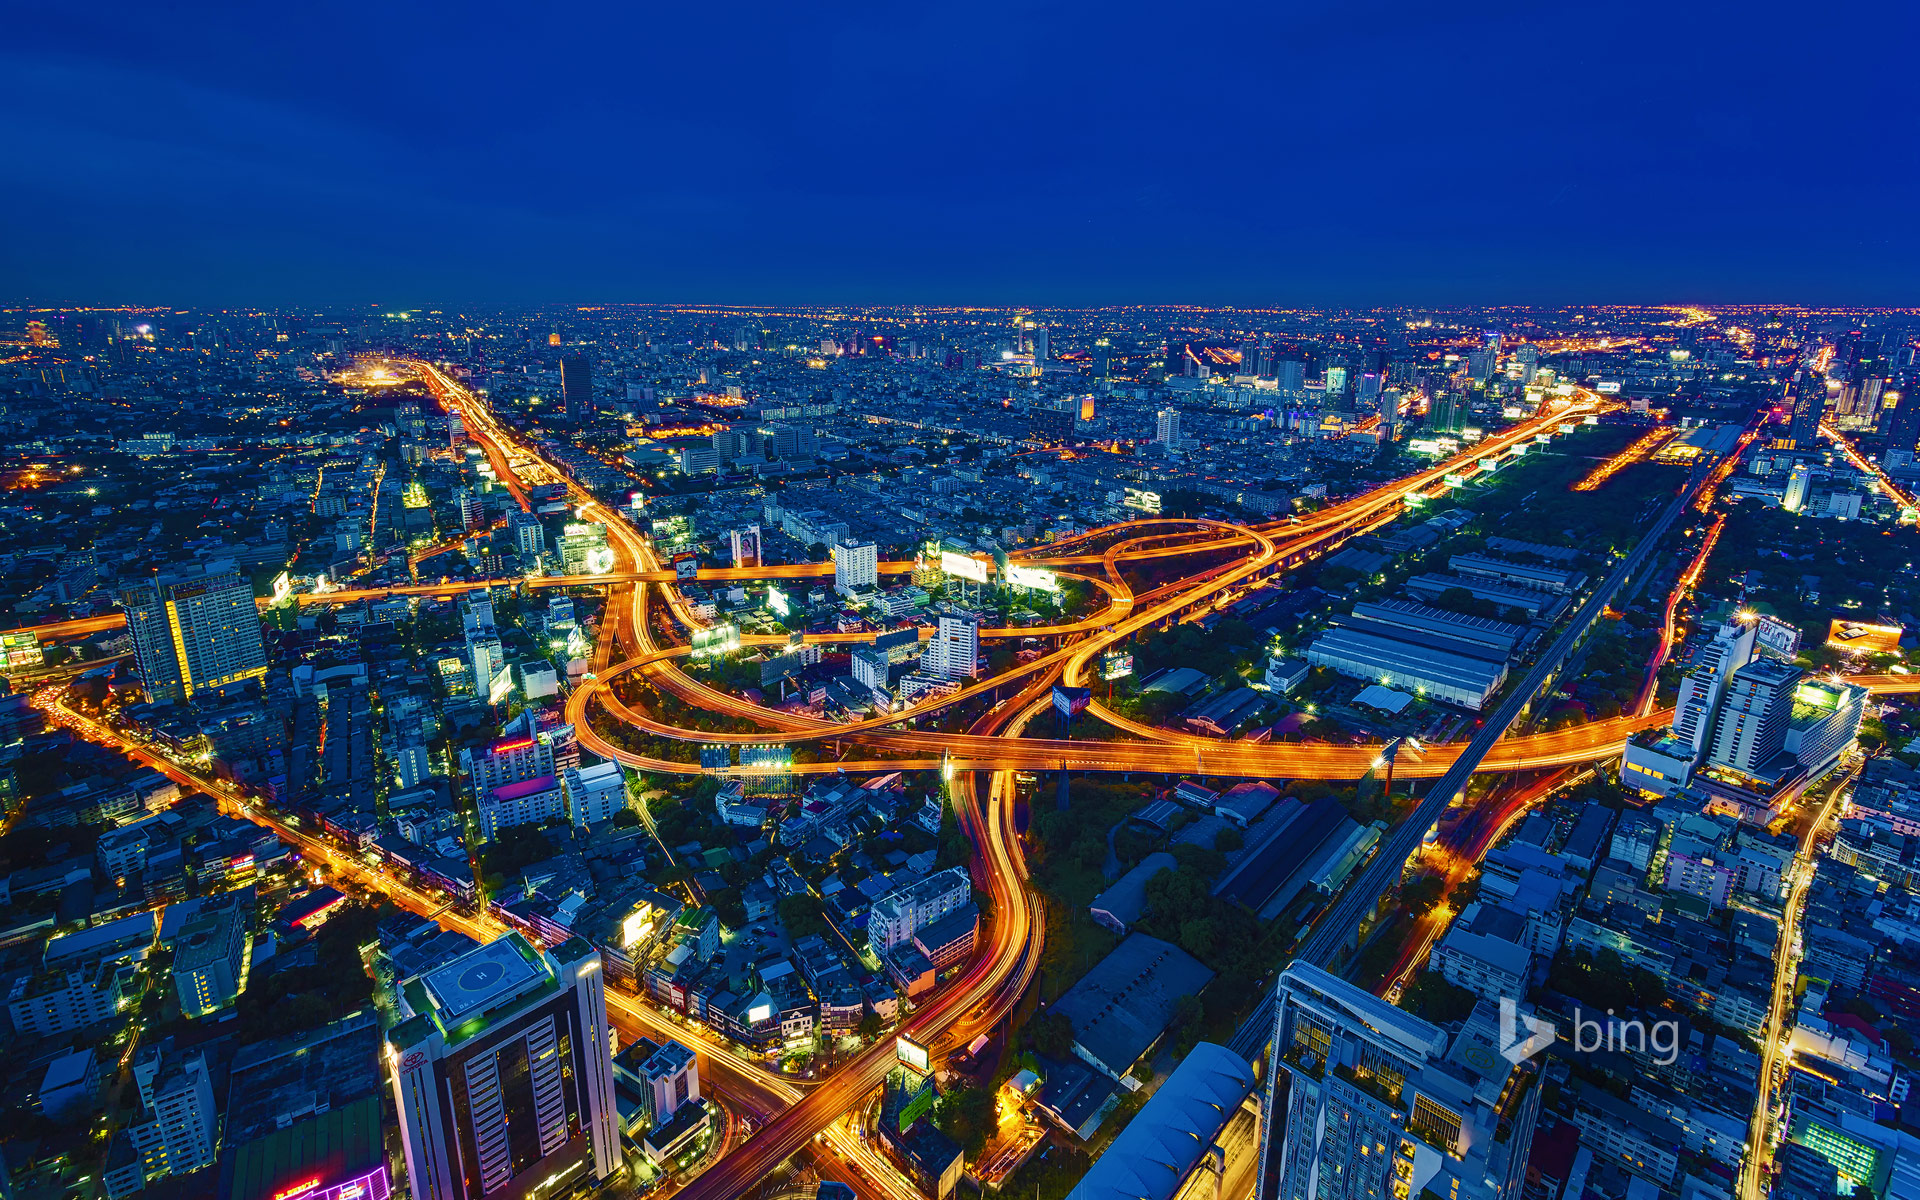 Time lapse of the expressways in Bangkok, Thailand